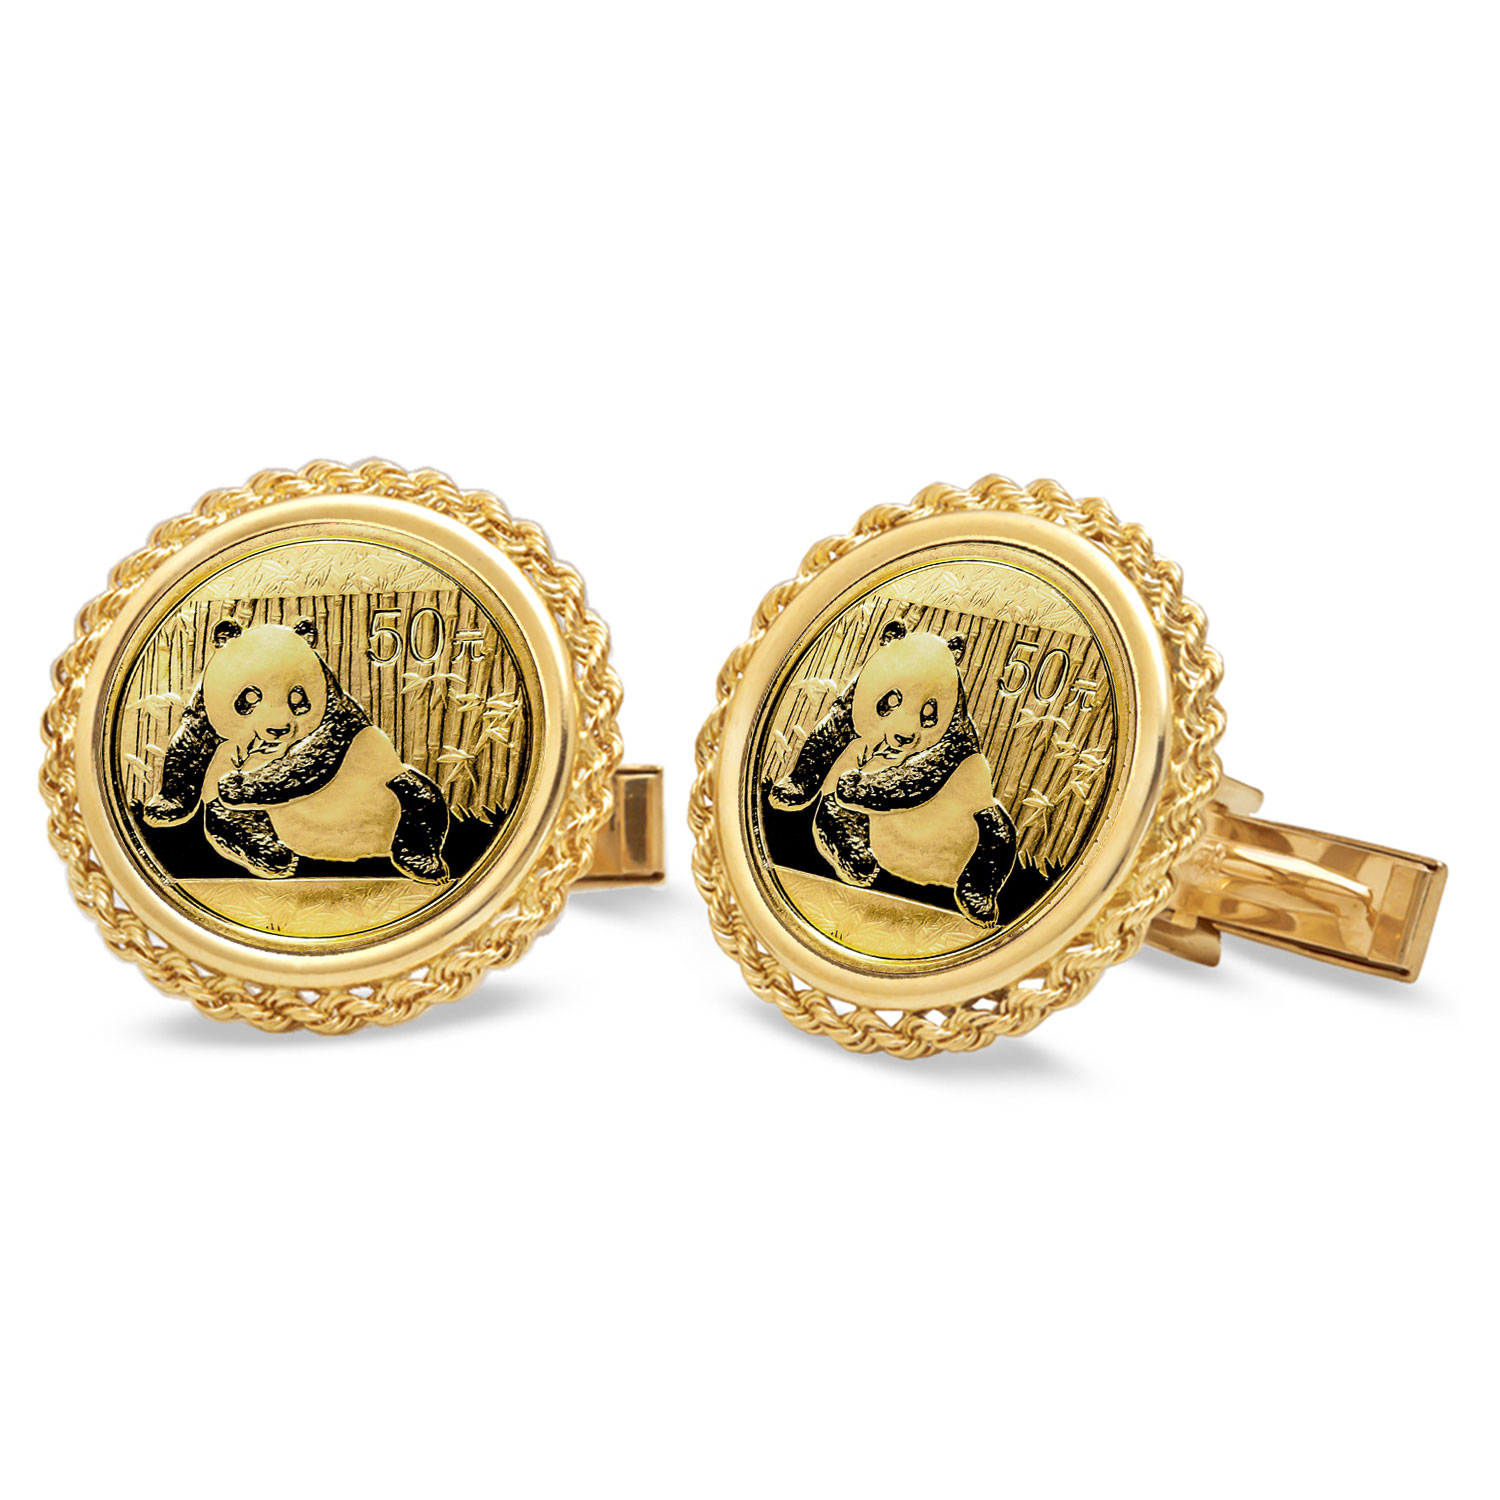 2015 1/10 oz Gold Panda Cuff Links (Polished Rope)